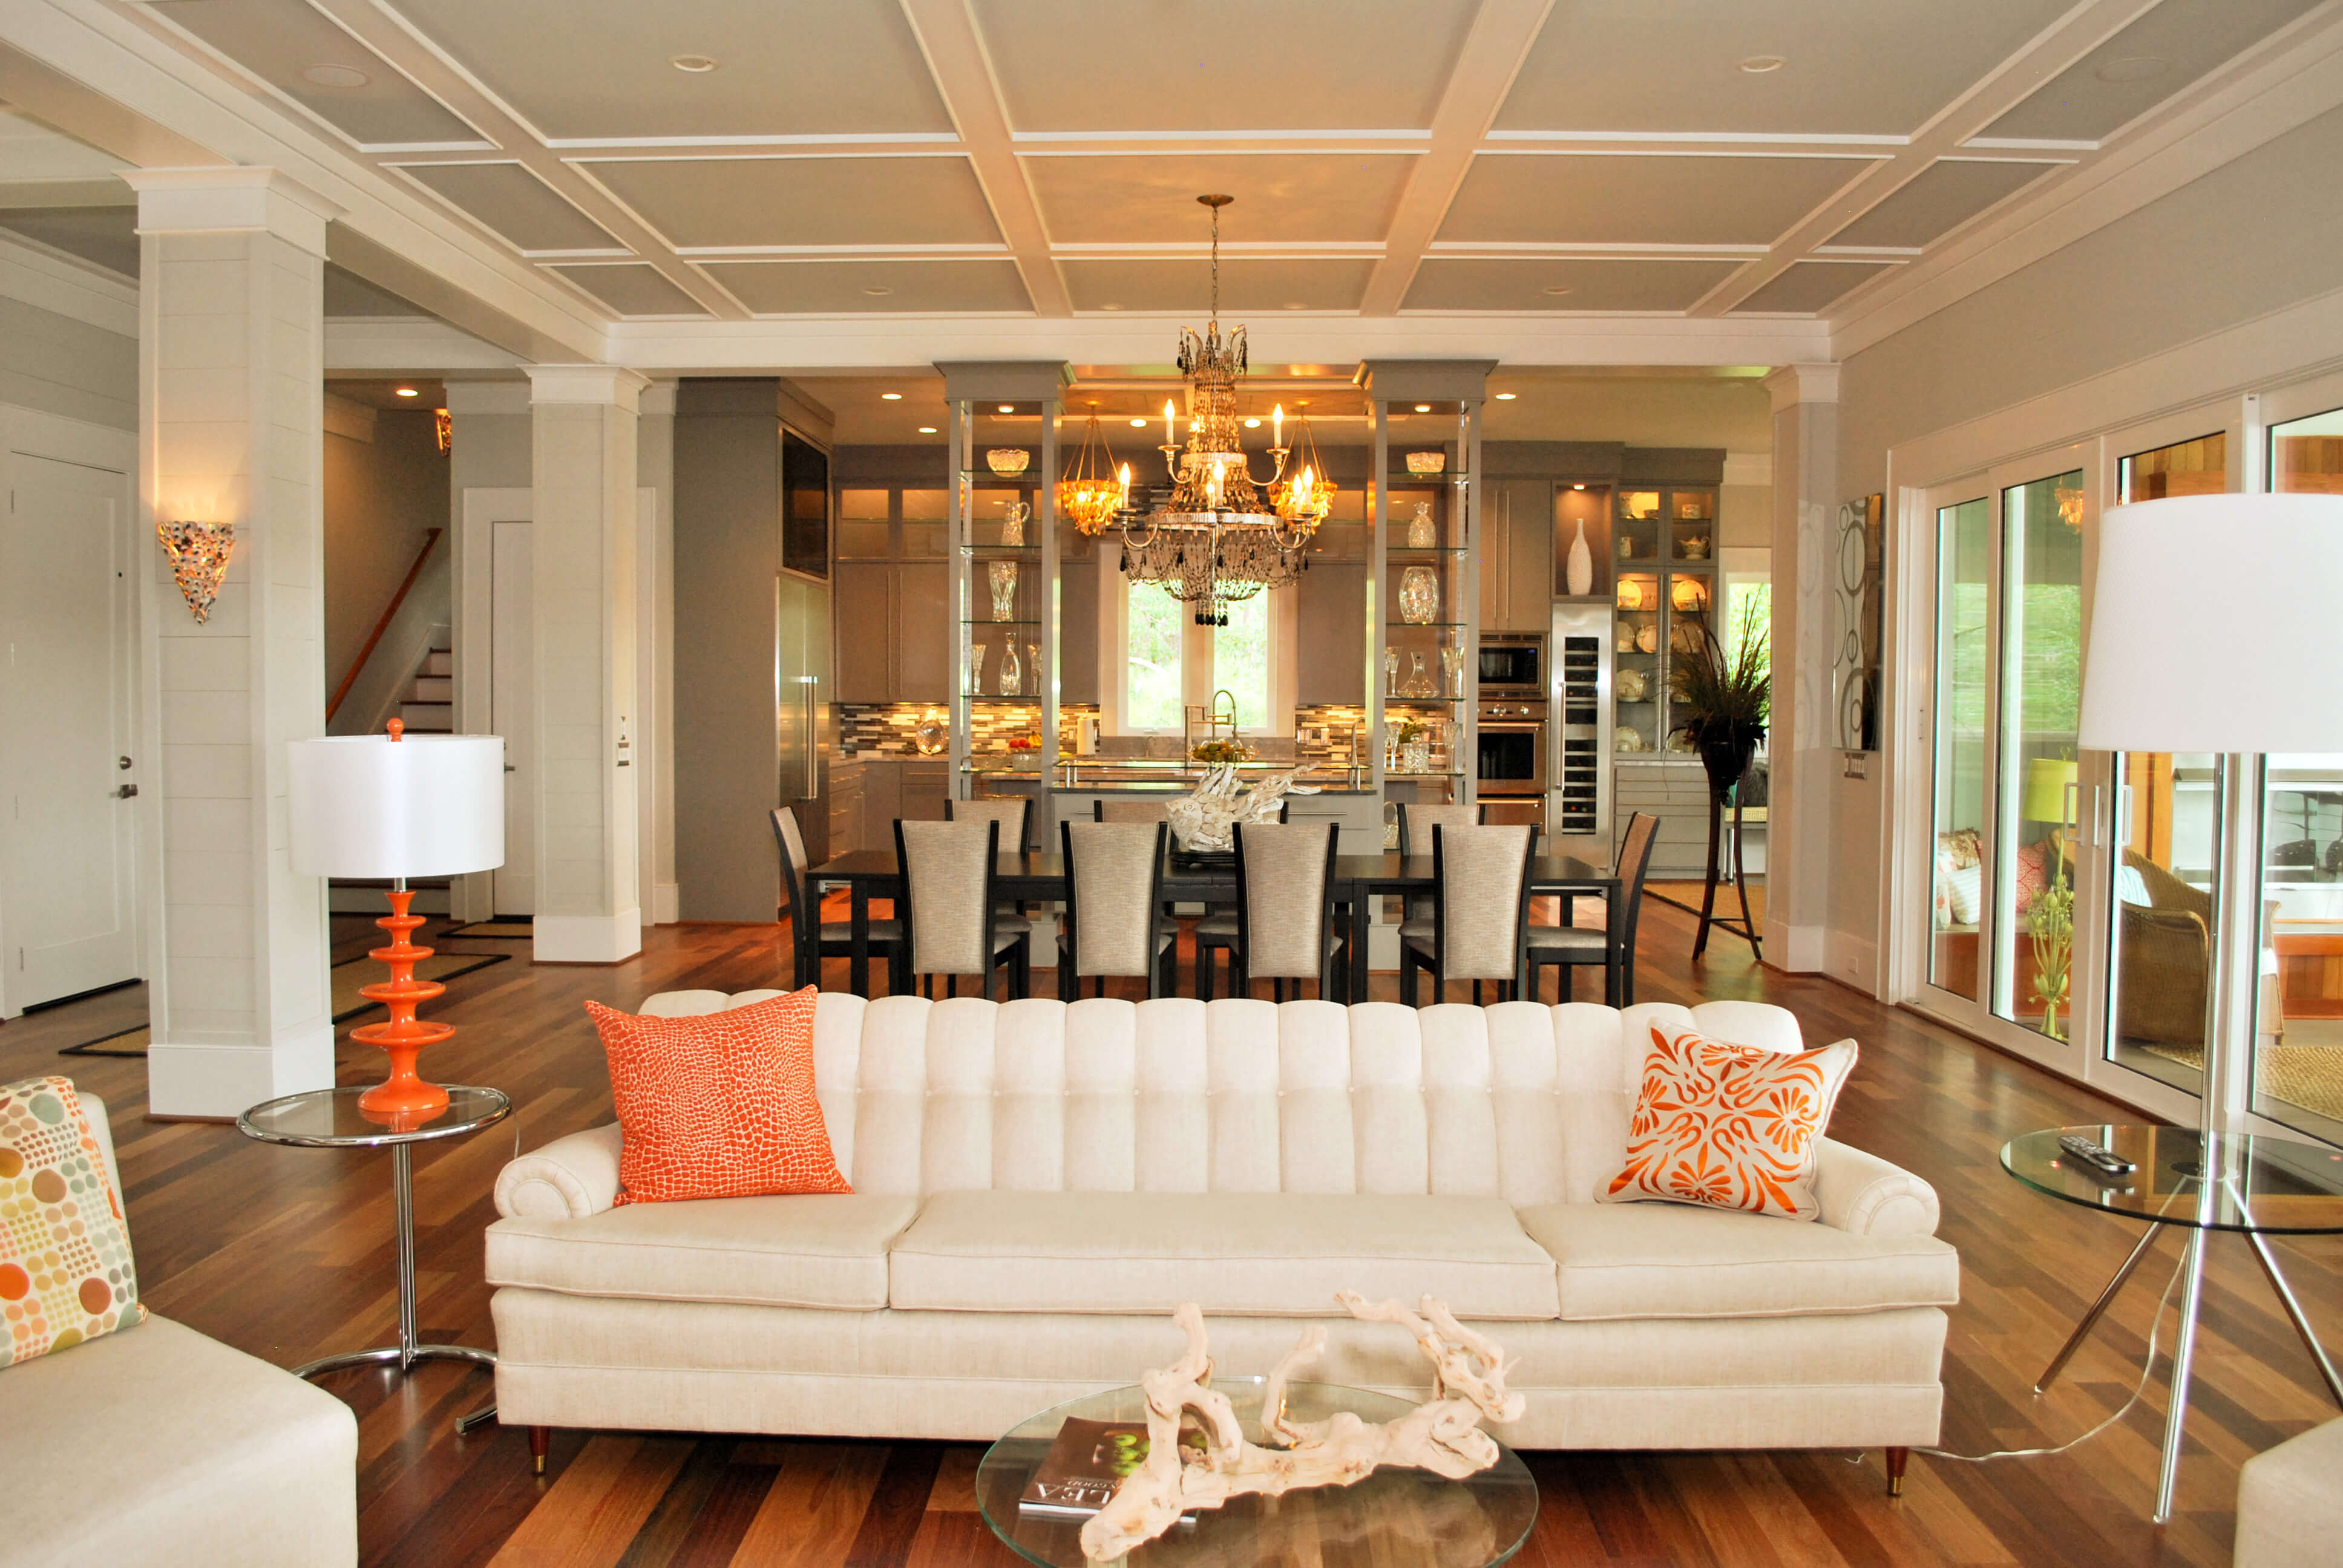 Luxurious living room and dining room in tropical mansion